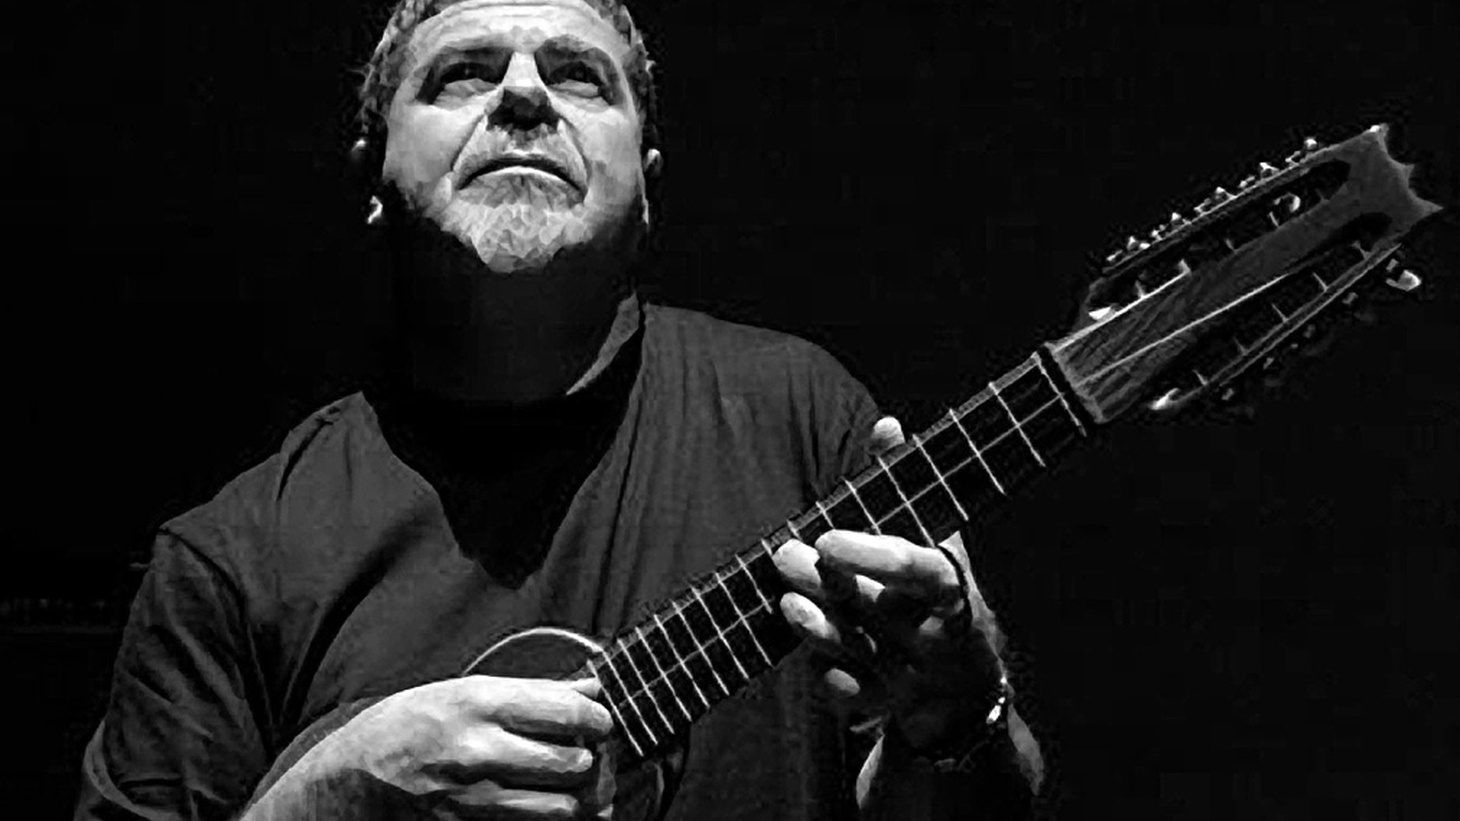 """Argentine Grammy and Oscar-winning composer and producer Gustavo Santaolalla displays his multi-instrumental talents and a minimalist mood on Today's Top Tune """"Seguir""""."""